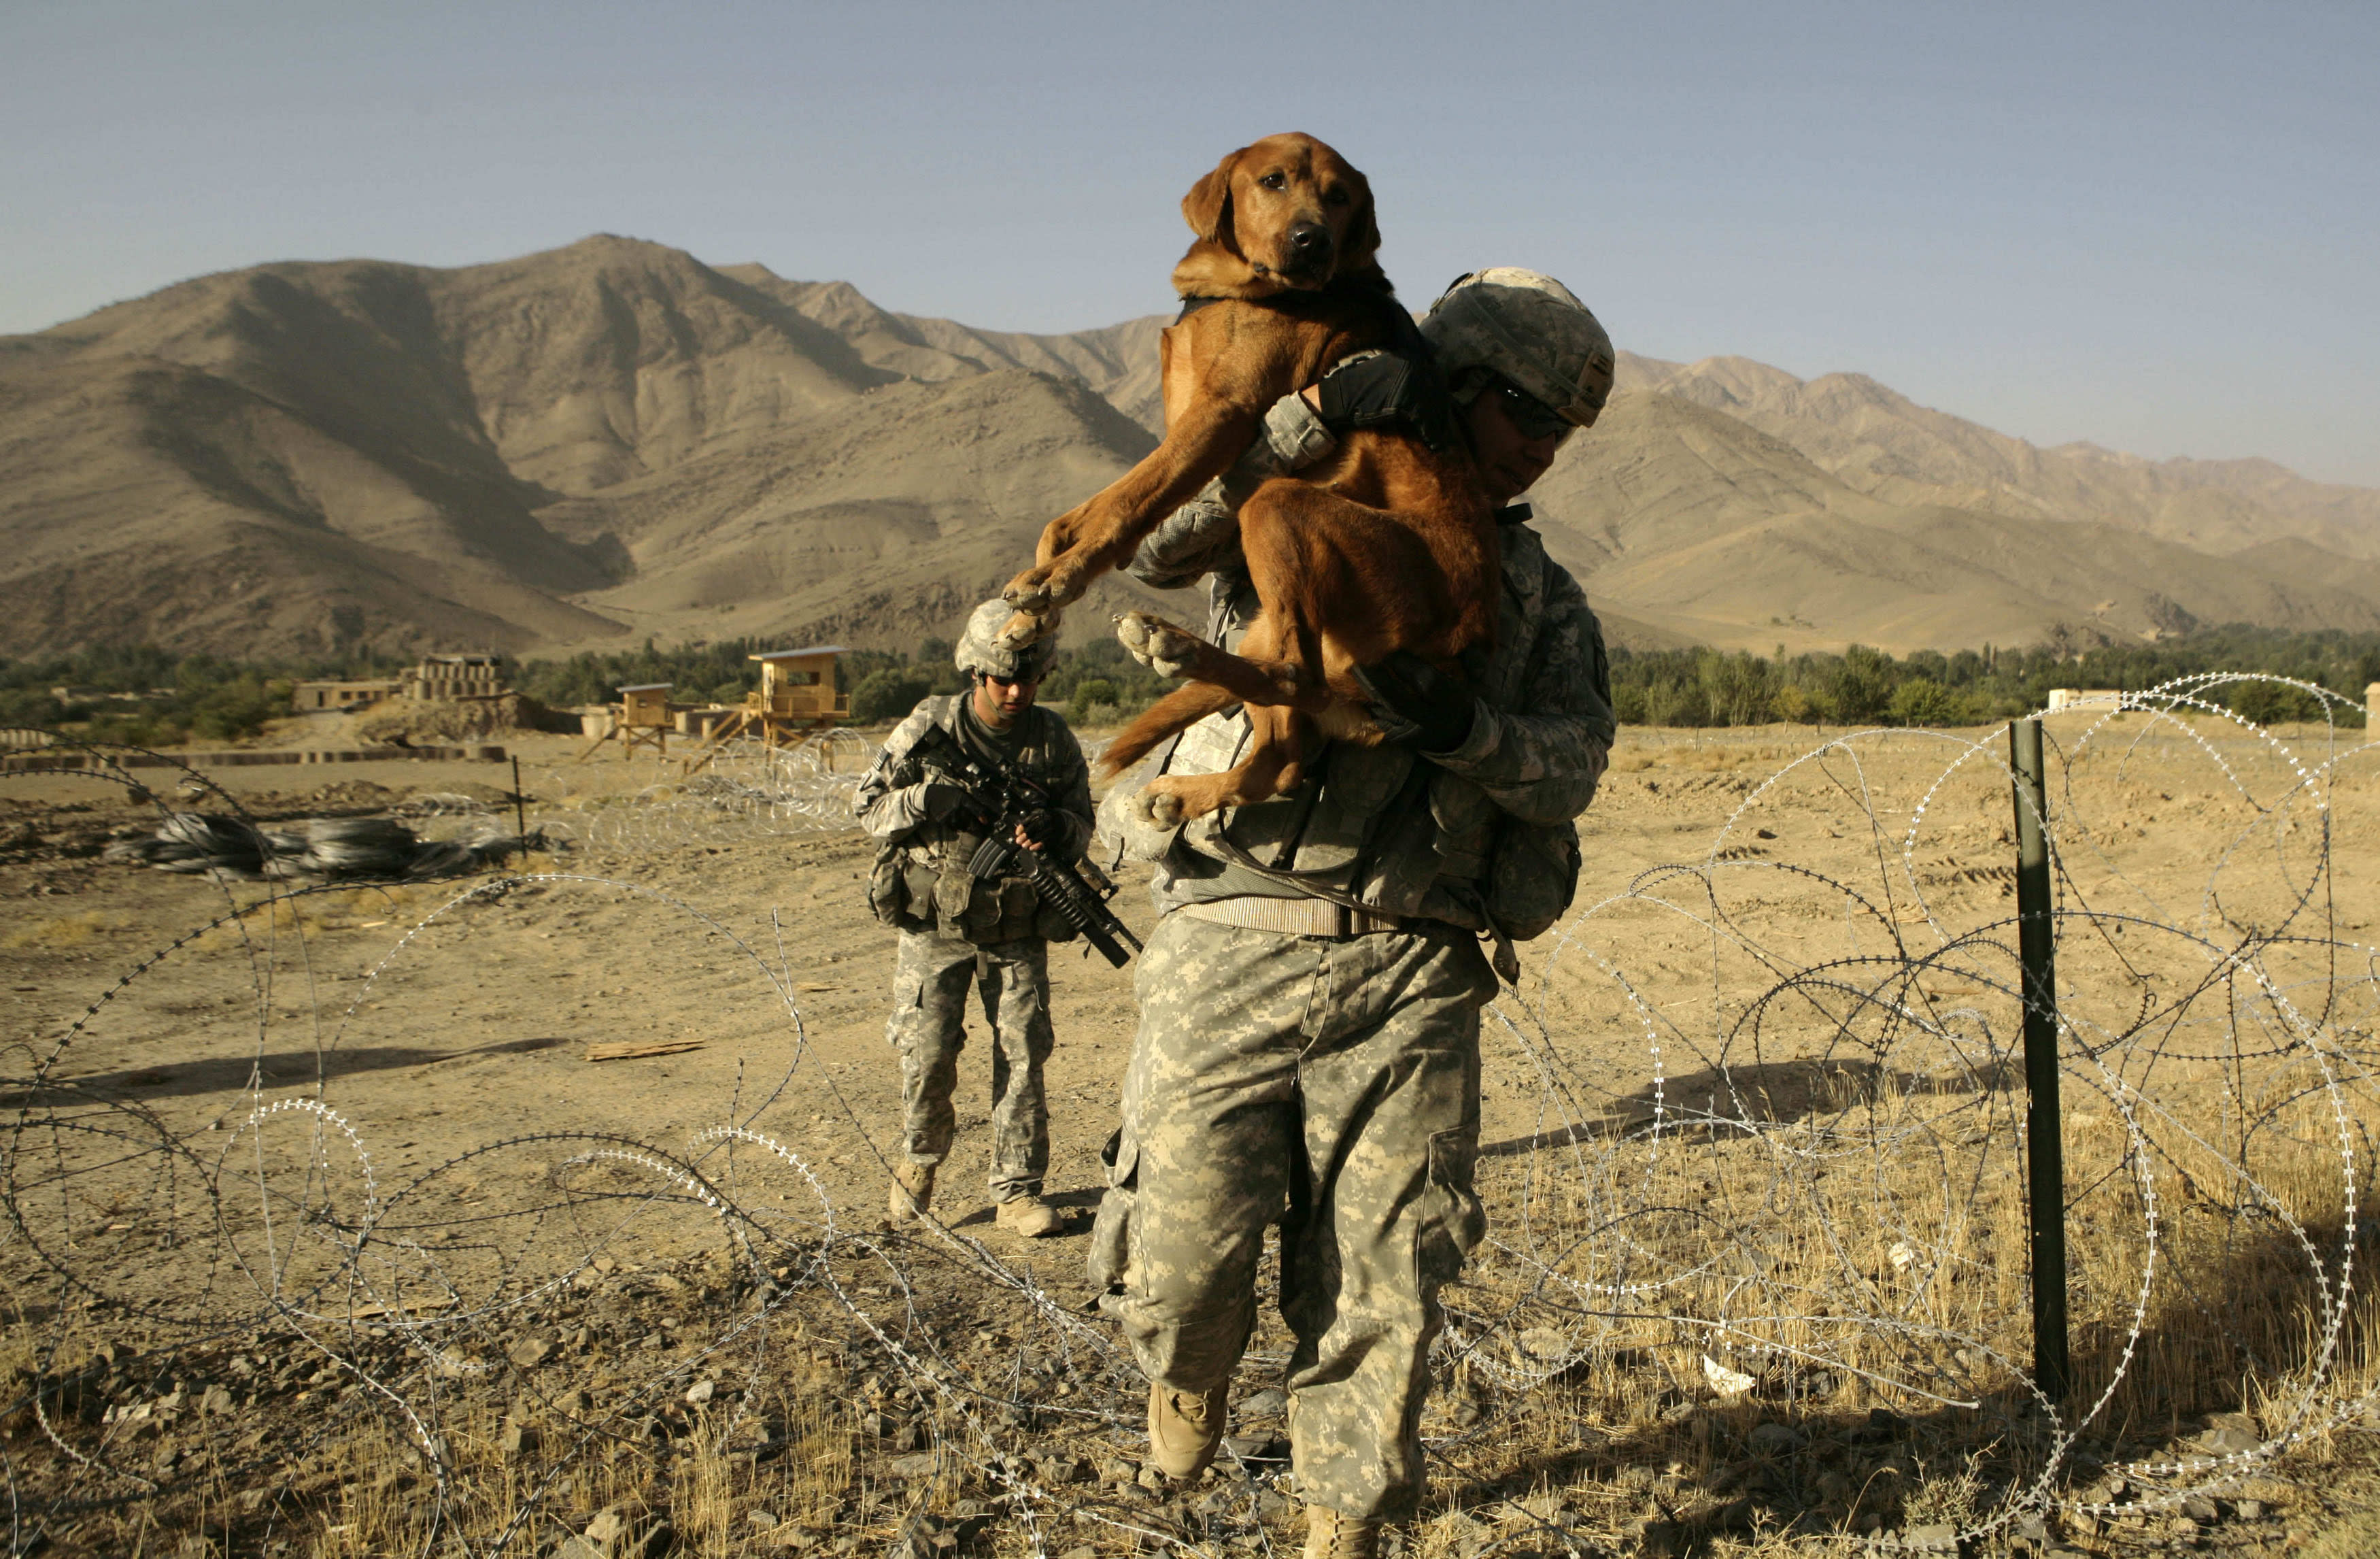 FILE - In this file picture taken Monday, Sept. 28, 2009, U.S. Army dog handler Sgt. Adrian Garcia, 24, from El Paso, Texas, carries Staff Sgt. Kirby over a concertina wire fence during a patrol with 3rd Brigade, 10th Mountain Division in the Jalrez Valley in Afghanistan's Wardak Province. Moscow and Washington are intertwined in a complex and bloody history in Afghanistan, with both suffering thousands of dead and wounded in conflicts lasting for years. Now both superpowers are linked again over Afghanistan, with intelligence reports indicating Russia secretly offered bounties to the Taliban to kill American troops there. But analysts suggest that the two adversaries actually have more in common, especially when it comes to what they want to see in a postwar Afghanistan: a stable country that does not serve as a base for extremists to export terrorism. Both countries also are aligned in their opposition to militants from the Islamic State group. (AP Photo/Maya Alleruzzo, File)